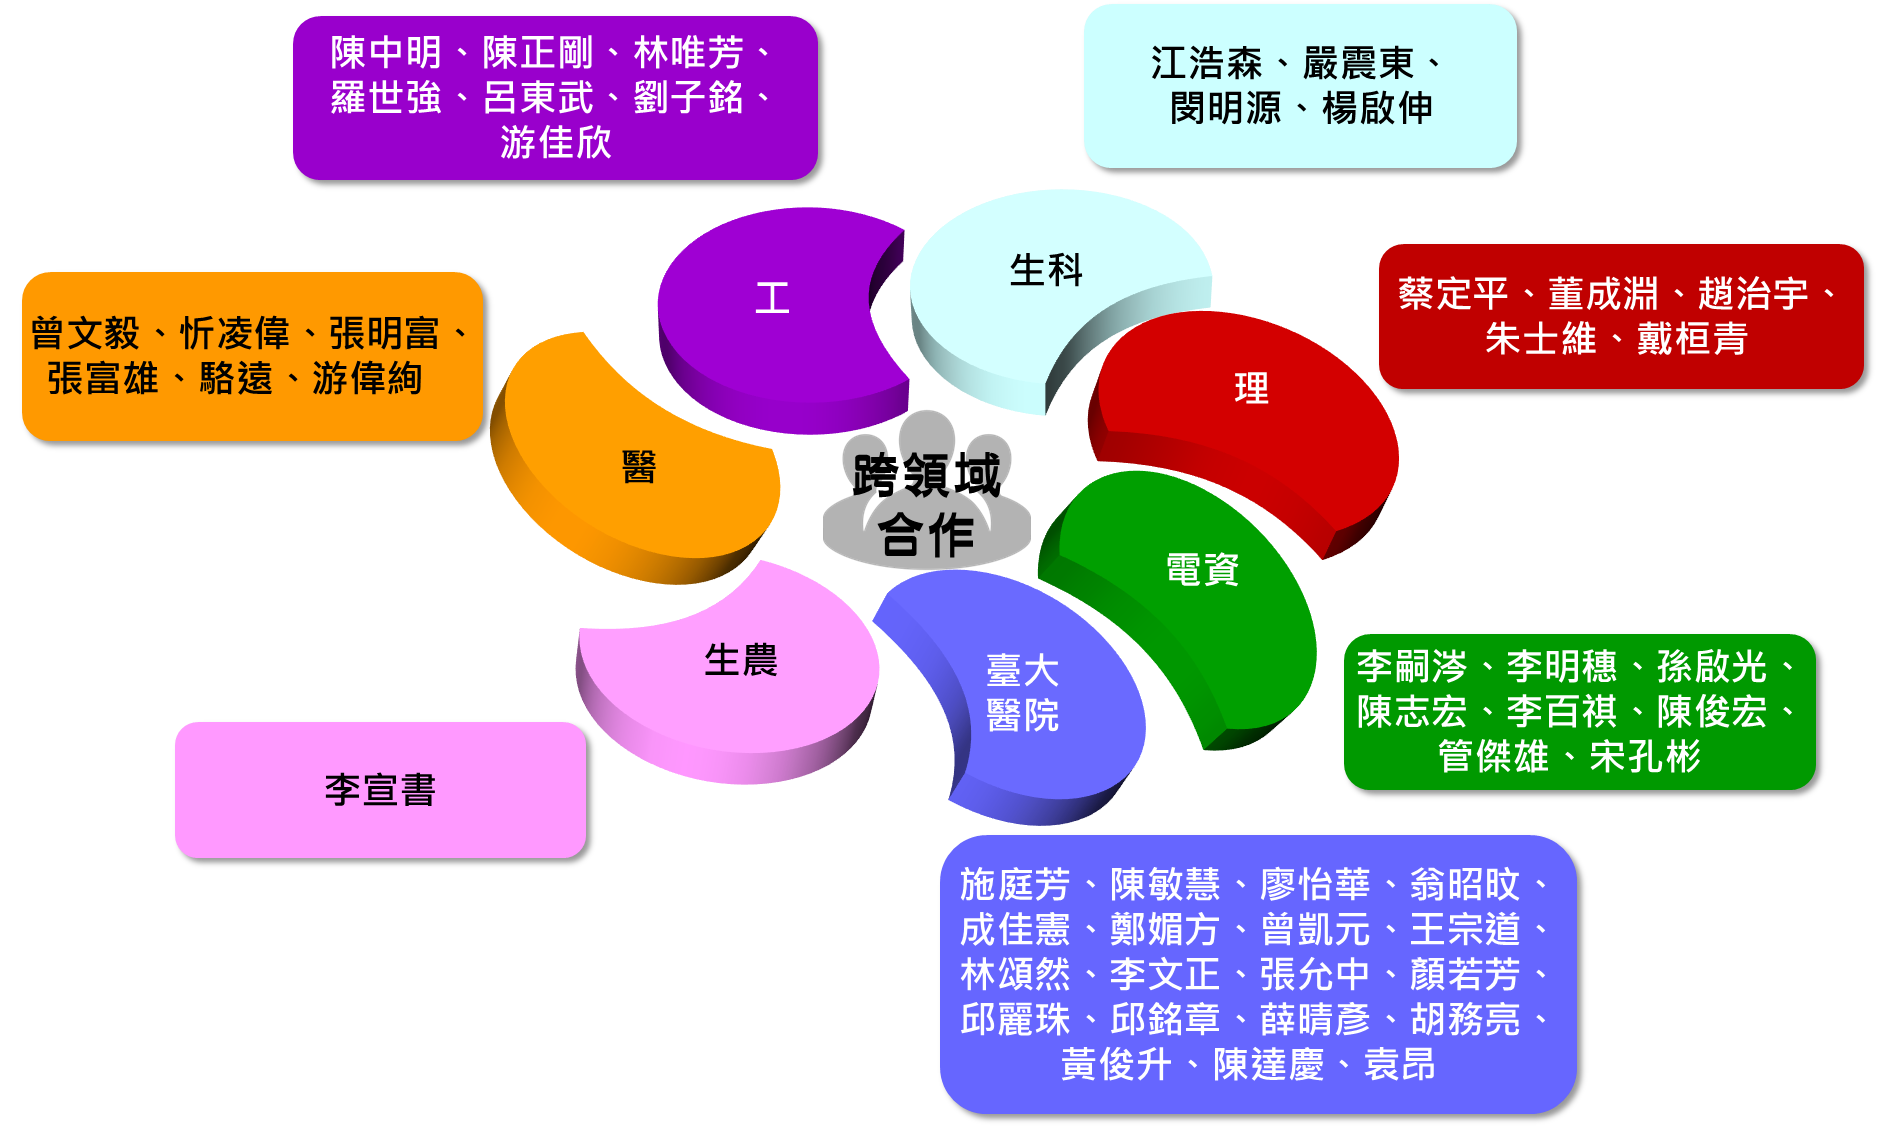 Organization of NTU MIC